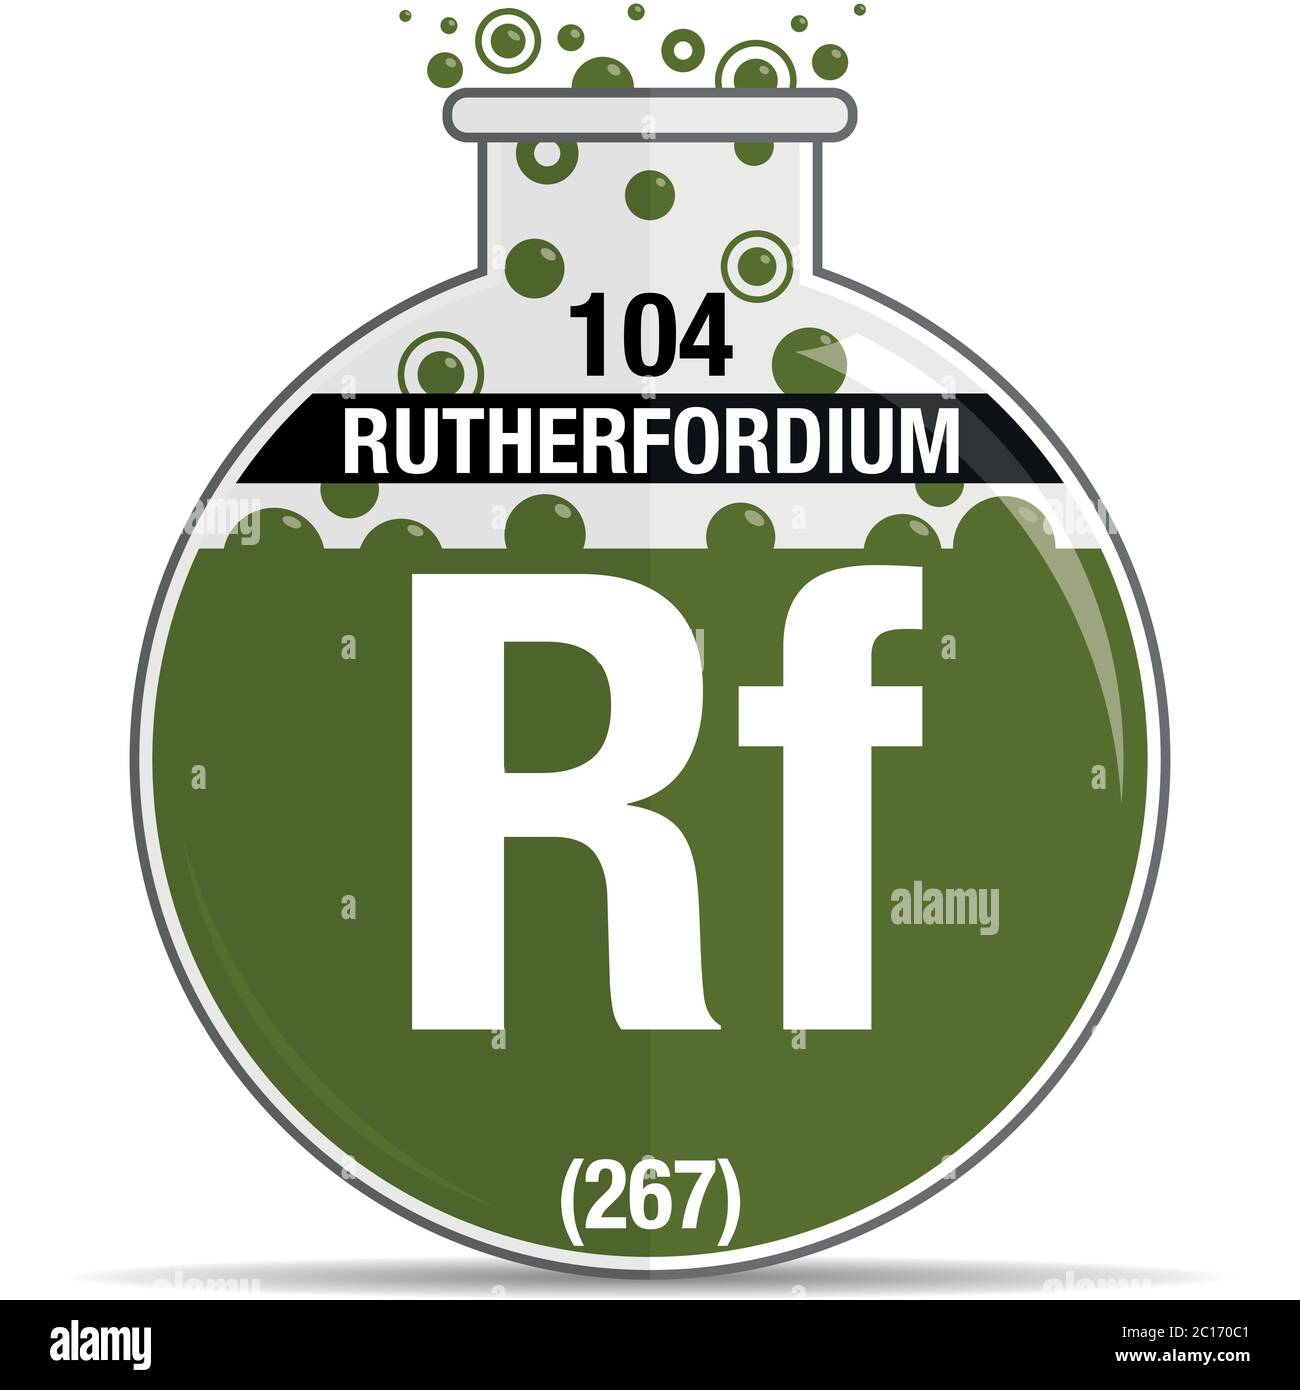 Rutherfordium symbol on chemical round flask. Element number 104 of the Periodic Table of the Elements - Chemistry. Vector image Stock Vector